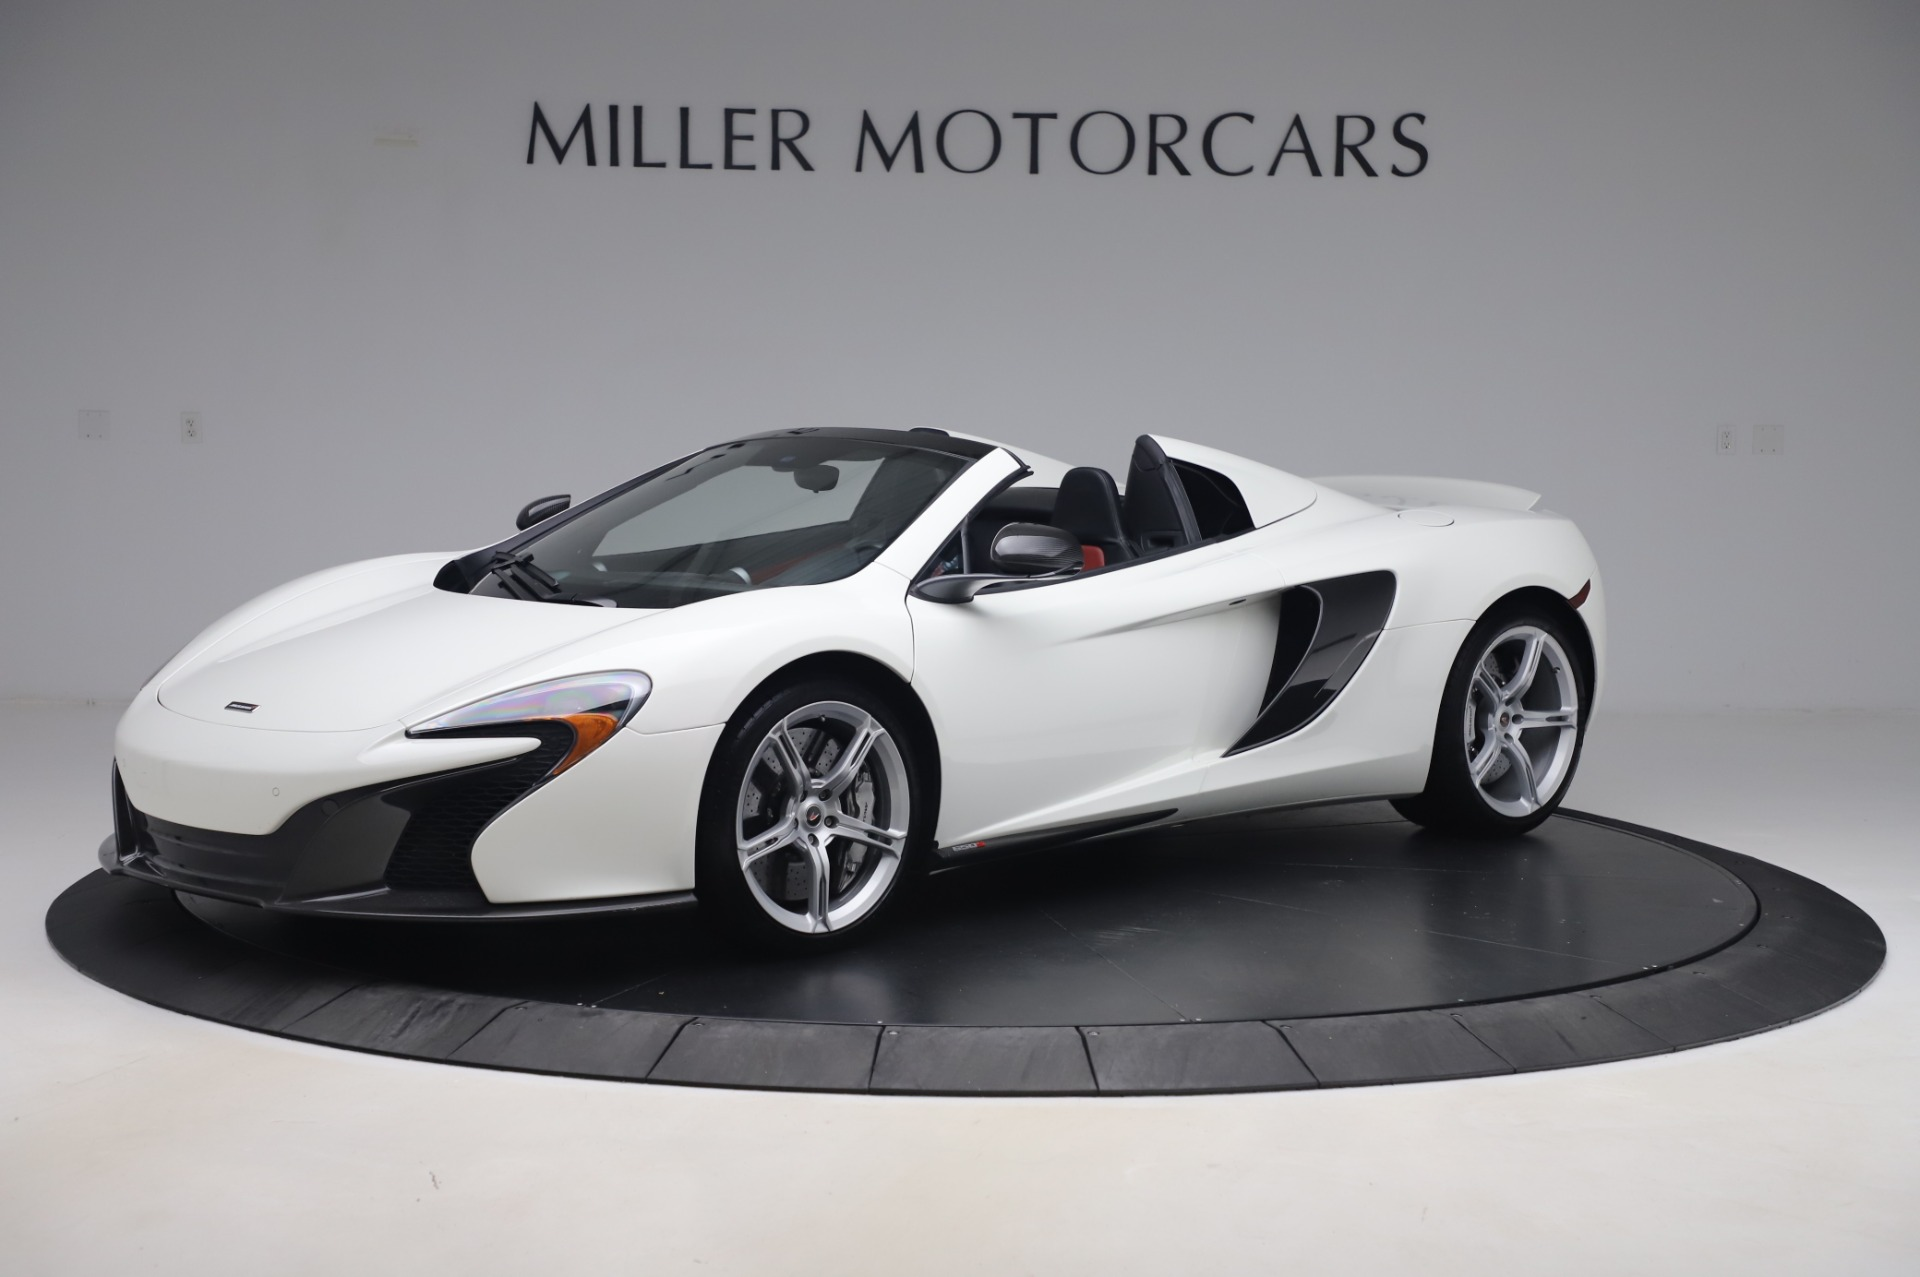 Used 2016 McLaren 650S Spider for sale Sold at Bentley Greenwich in Greenwich CT 06830 1